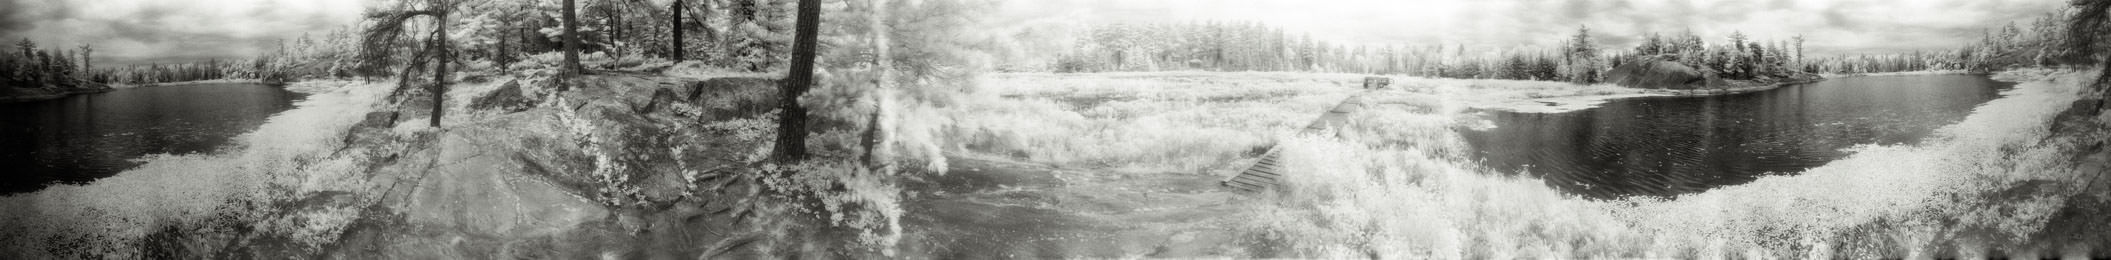 """""""Wetland Observation Structure"""" from the series Footprints, by William Mokrynski"""